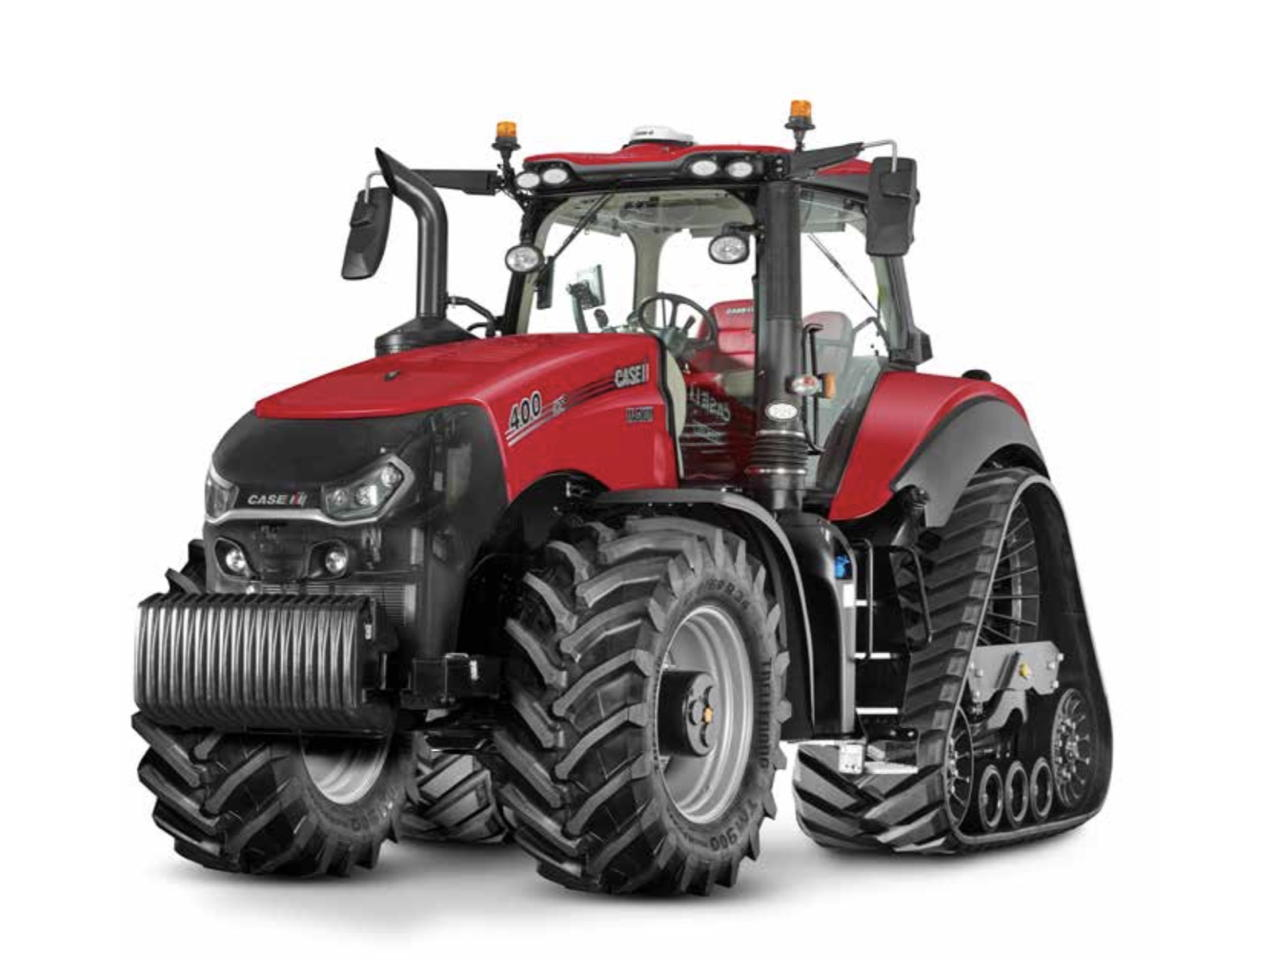 Case IH Magnum Rowtrac AFS Connect Magnum 400 PowerDrive Rowtrac AFS Connect